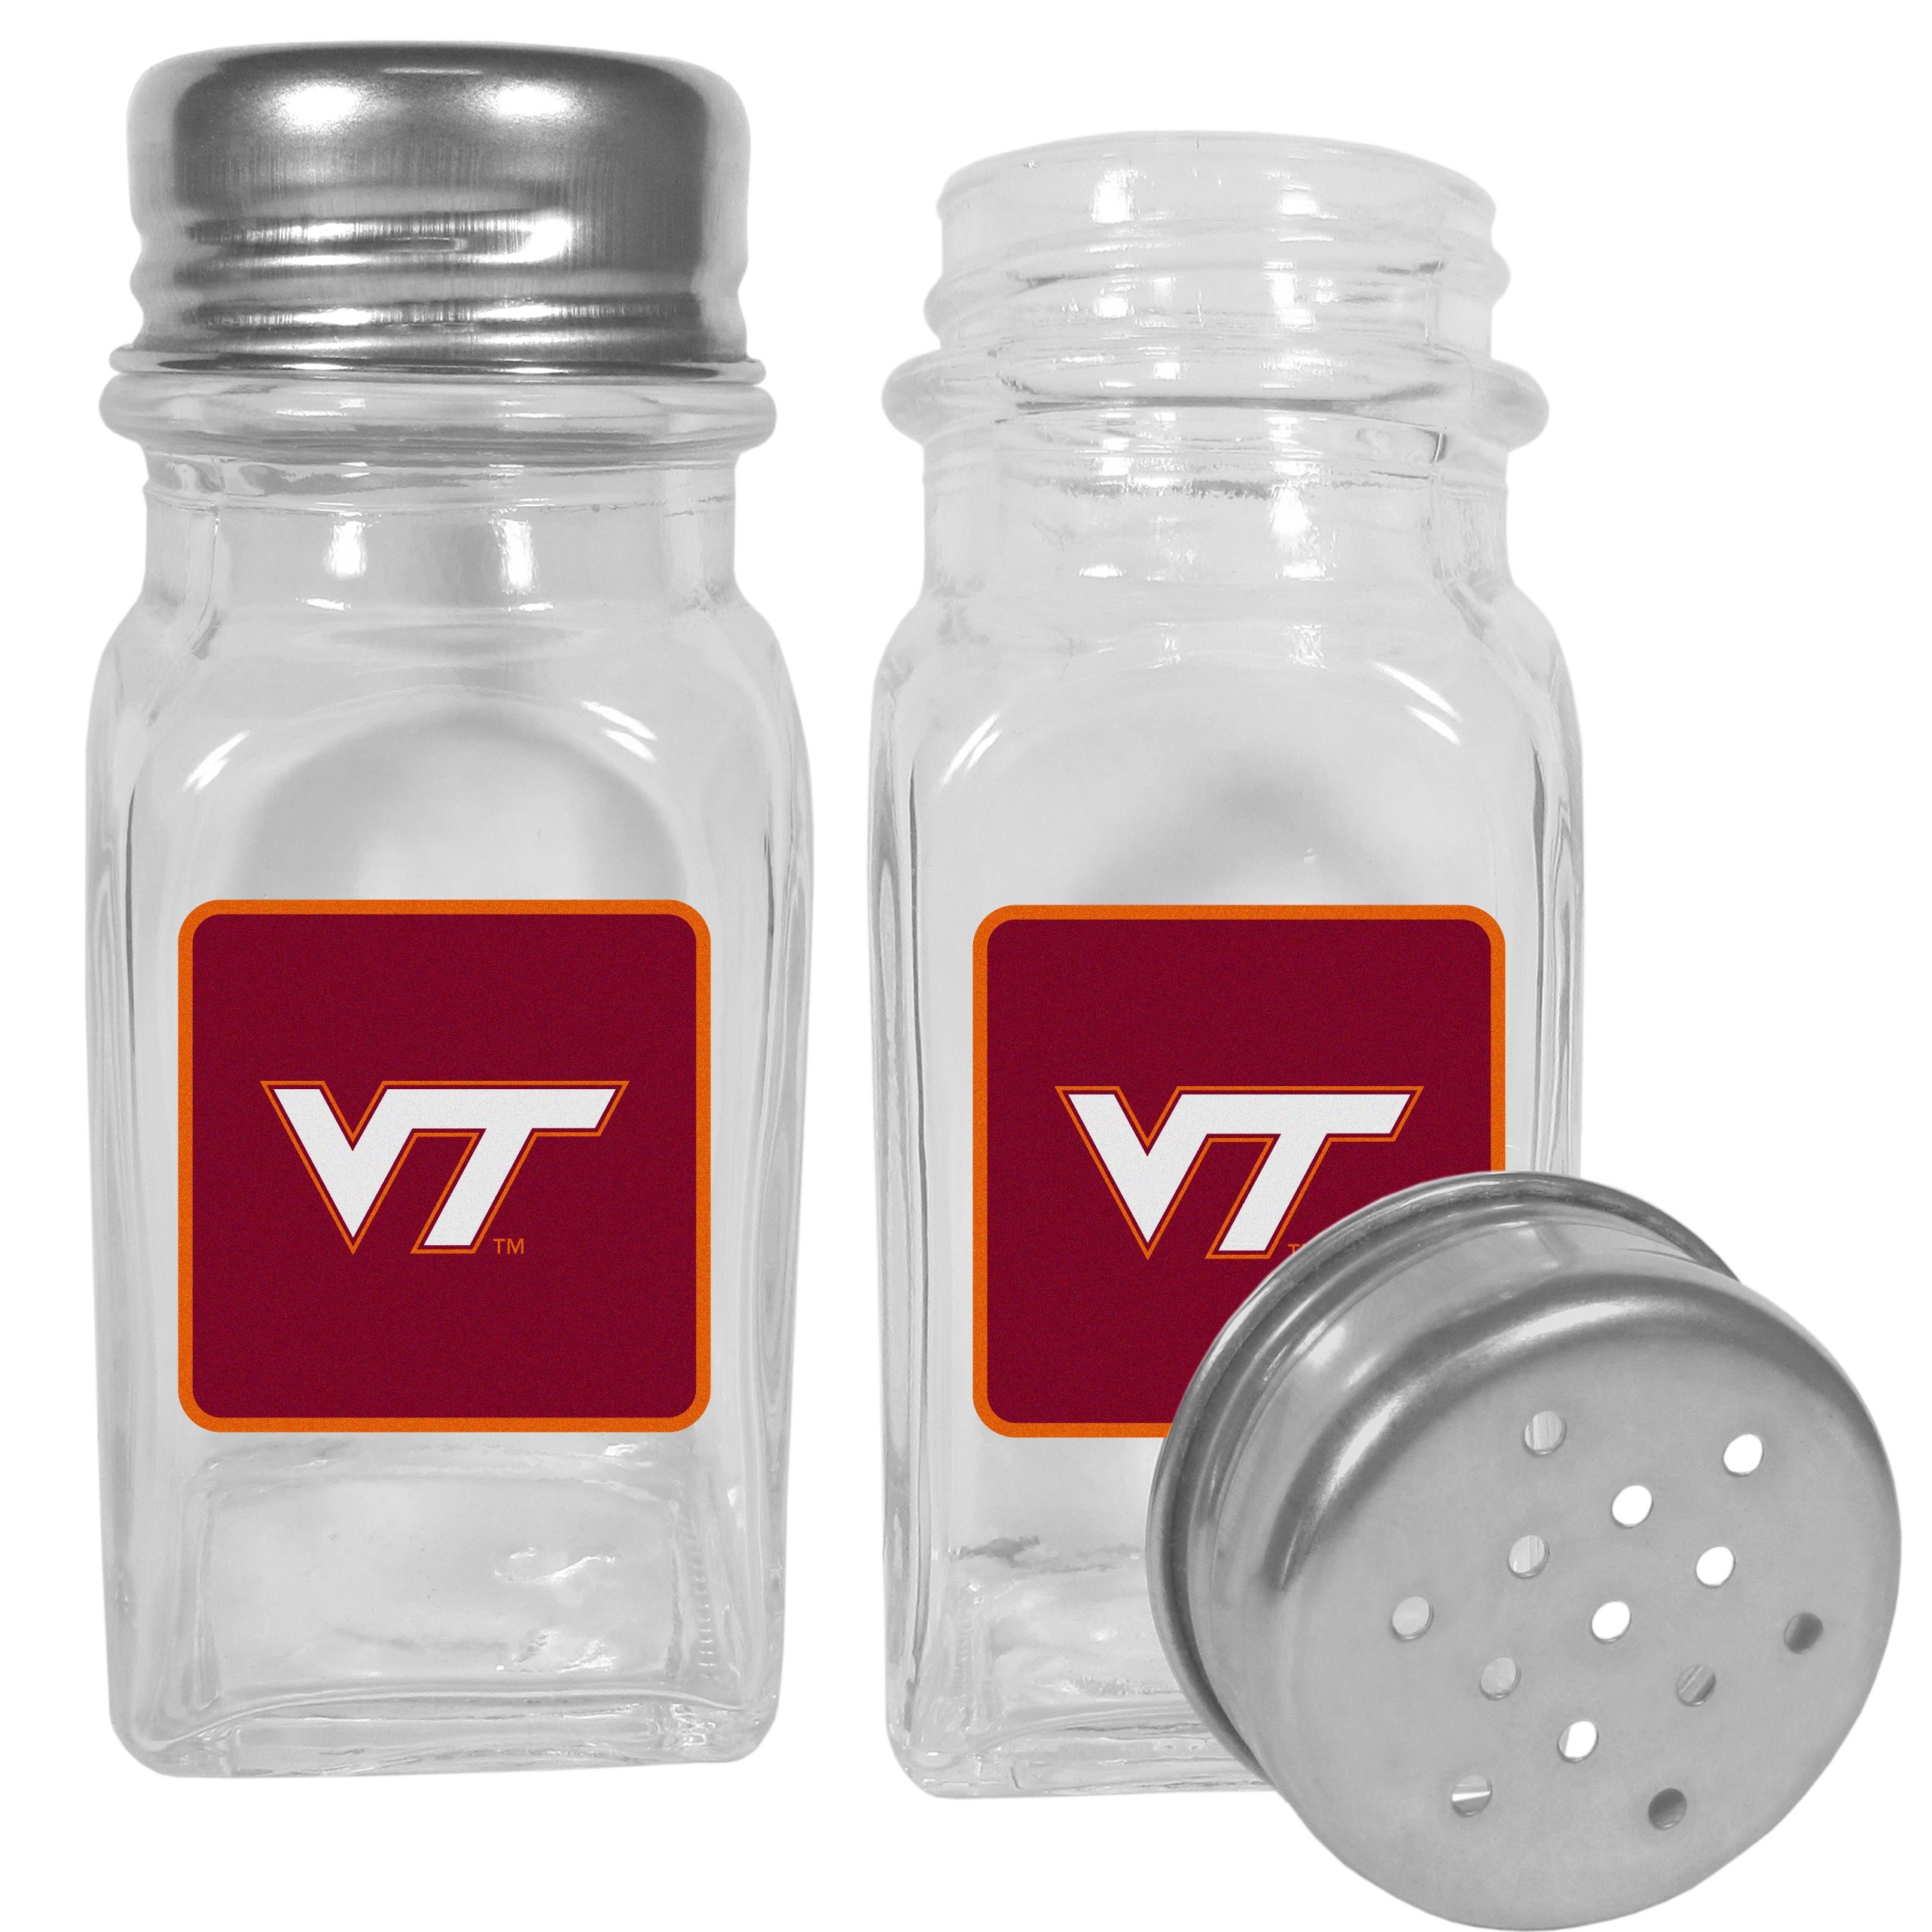 Virginia Tech Hokies Graphics Salt and Pepper Shaker - No tailgate party is complete without your Virginia Tech Hokies salt & pepper shakers featuring bright team logos. The diner replica salt and pepper shakers are glass with screw top lids. These team shakers are a great grill accessory whether you are barbecuing on the patio, picnicing or having a game day party.